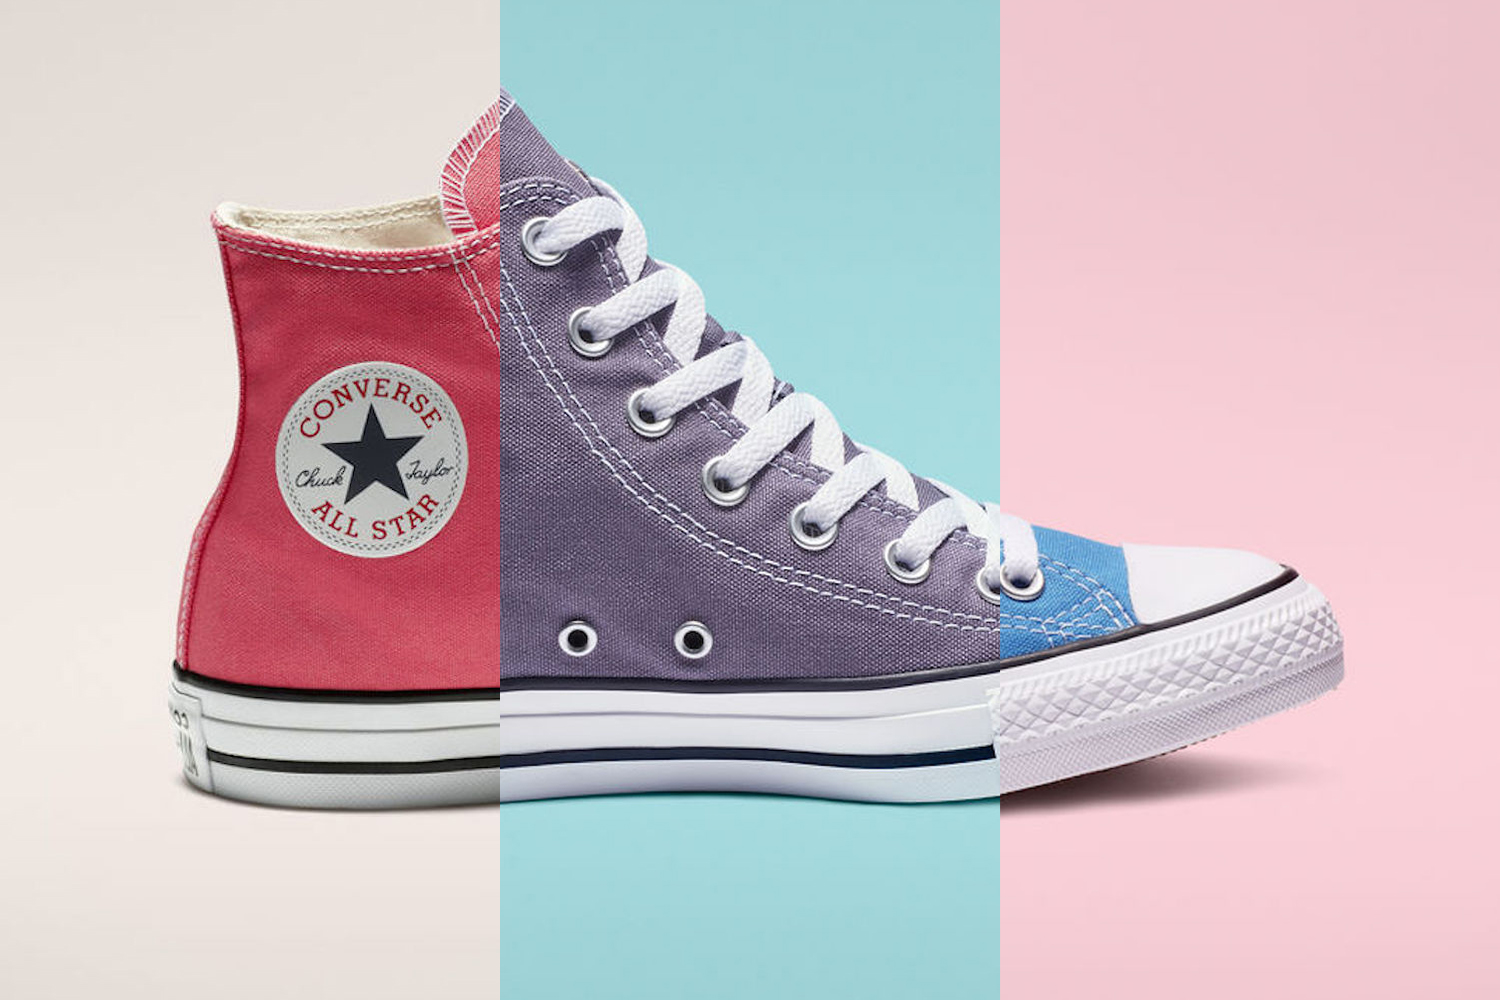 Converse discounted over 100 sneakers to just $25 a pair.